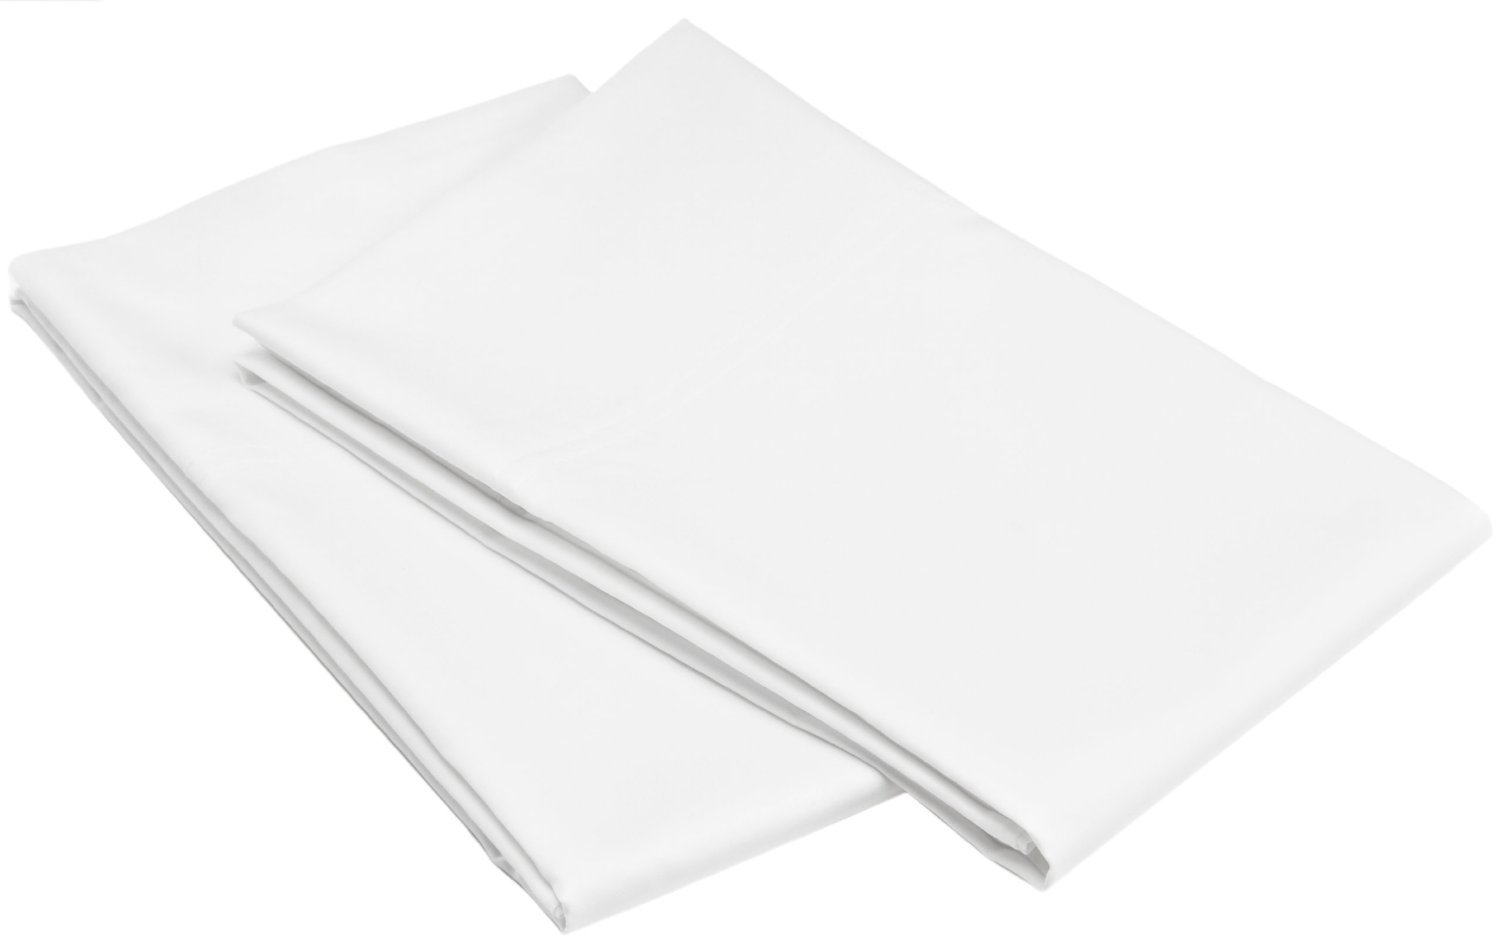 Bulk Pack of 24 King Size Pillowcases, White 300 Thread Count, 20''x40'' Solid White 2 Dozen, Perfect for Physical Therapy Clinics, Hotels, Camps by Arihant Bedding (Image #2)